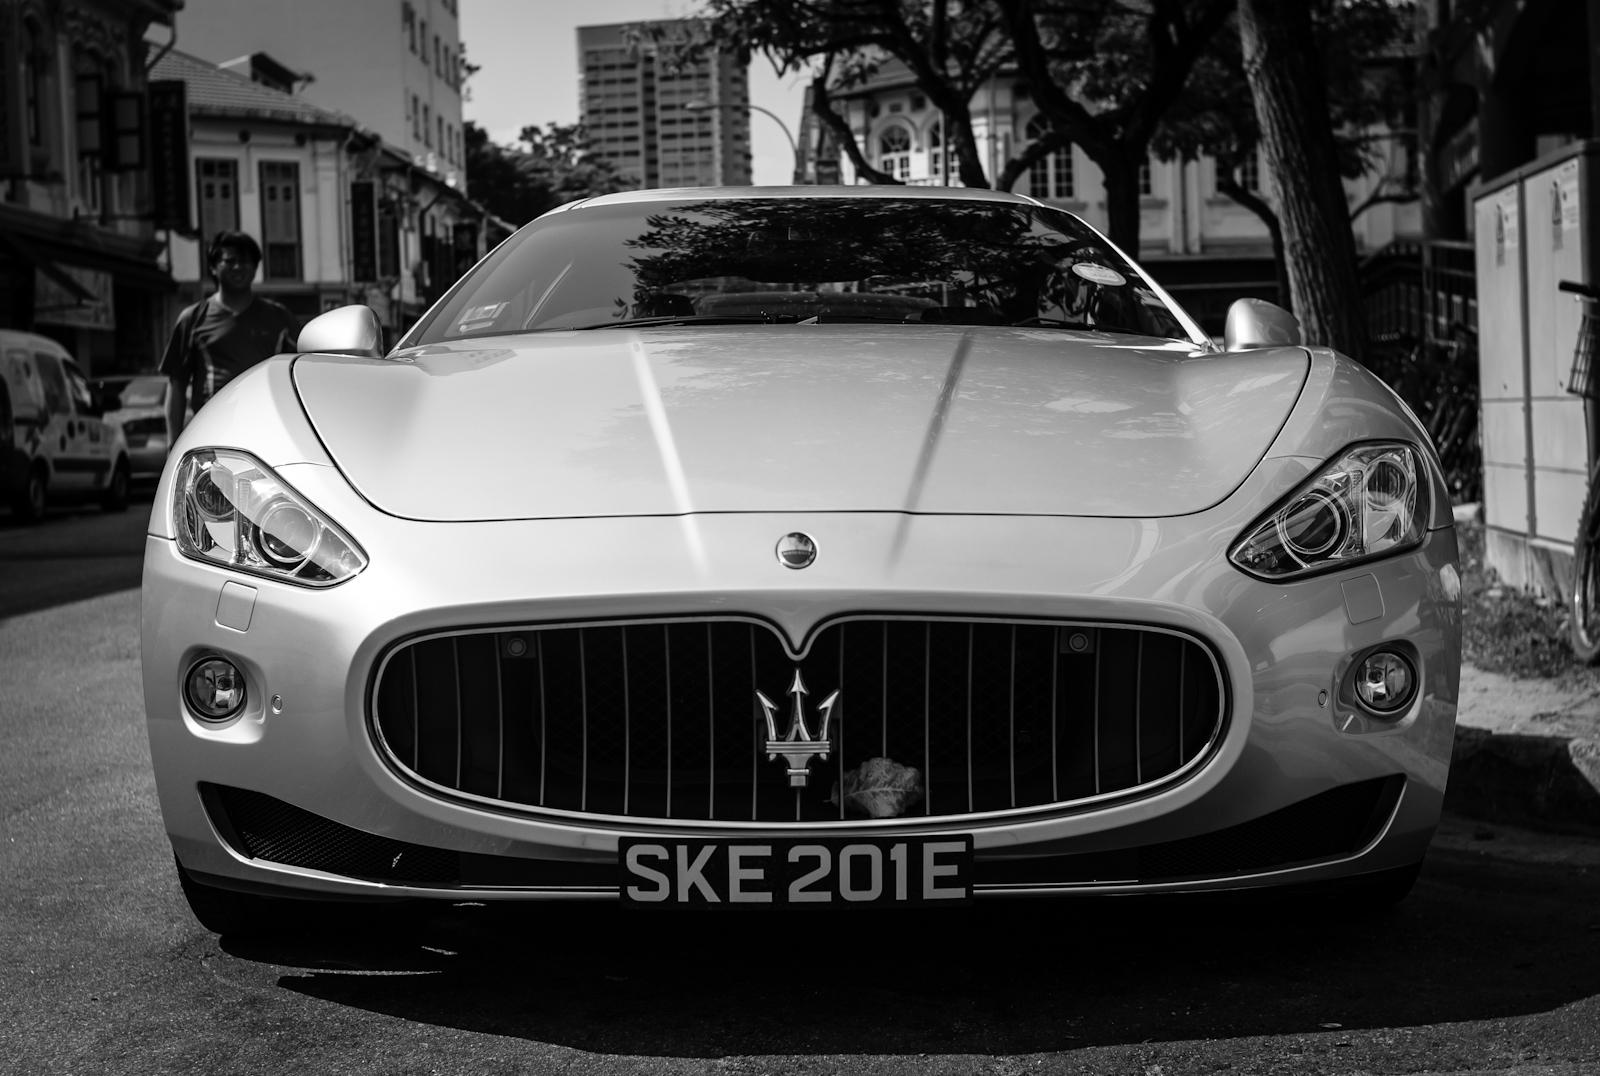 Street photography - a dried leaf stuck on the front of a Maserati